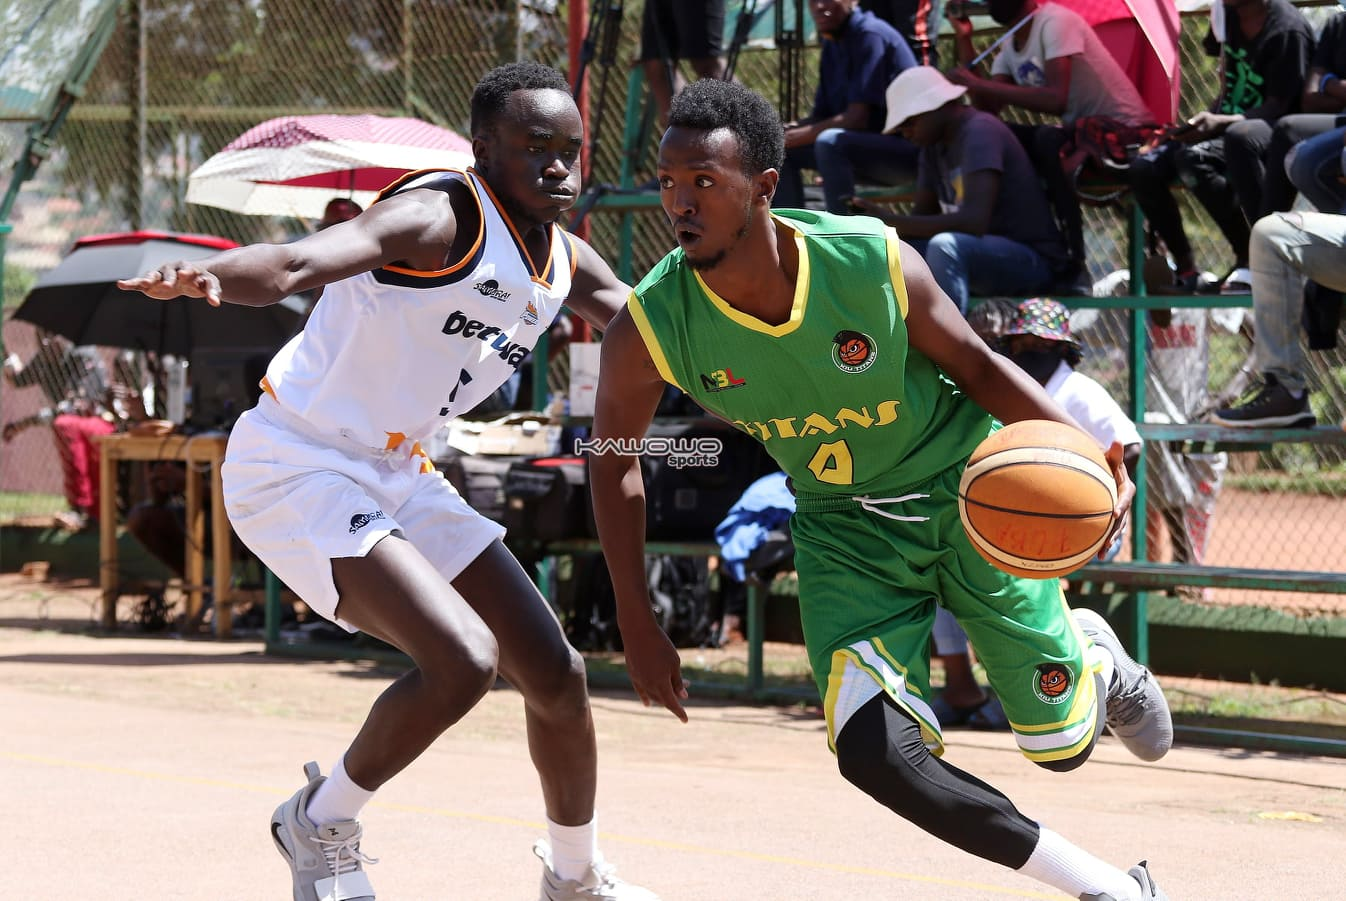 2021 National Basketball League cancelled, Lower Divisions to continue